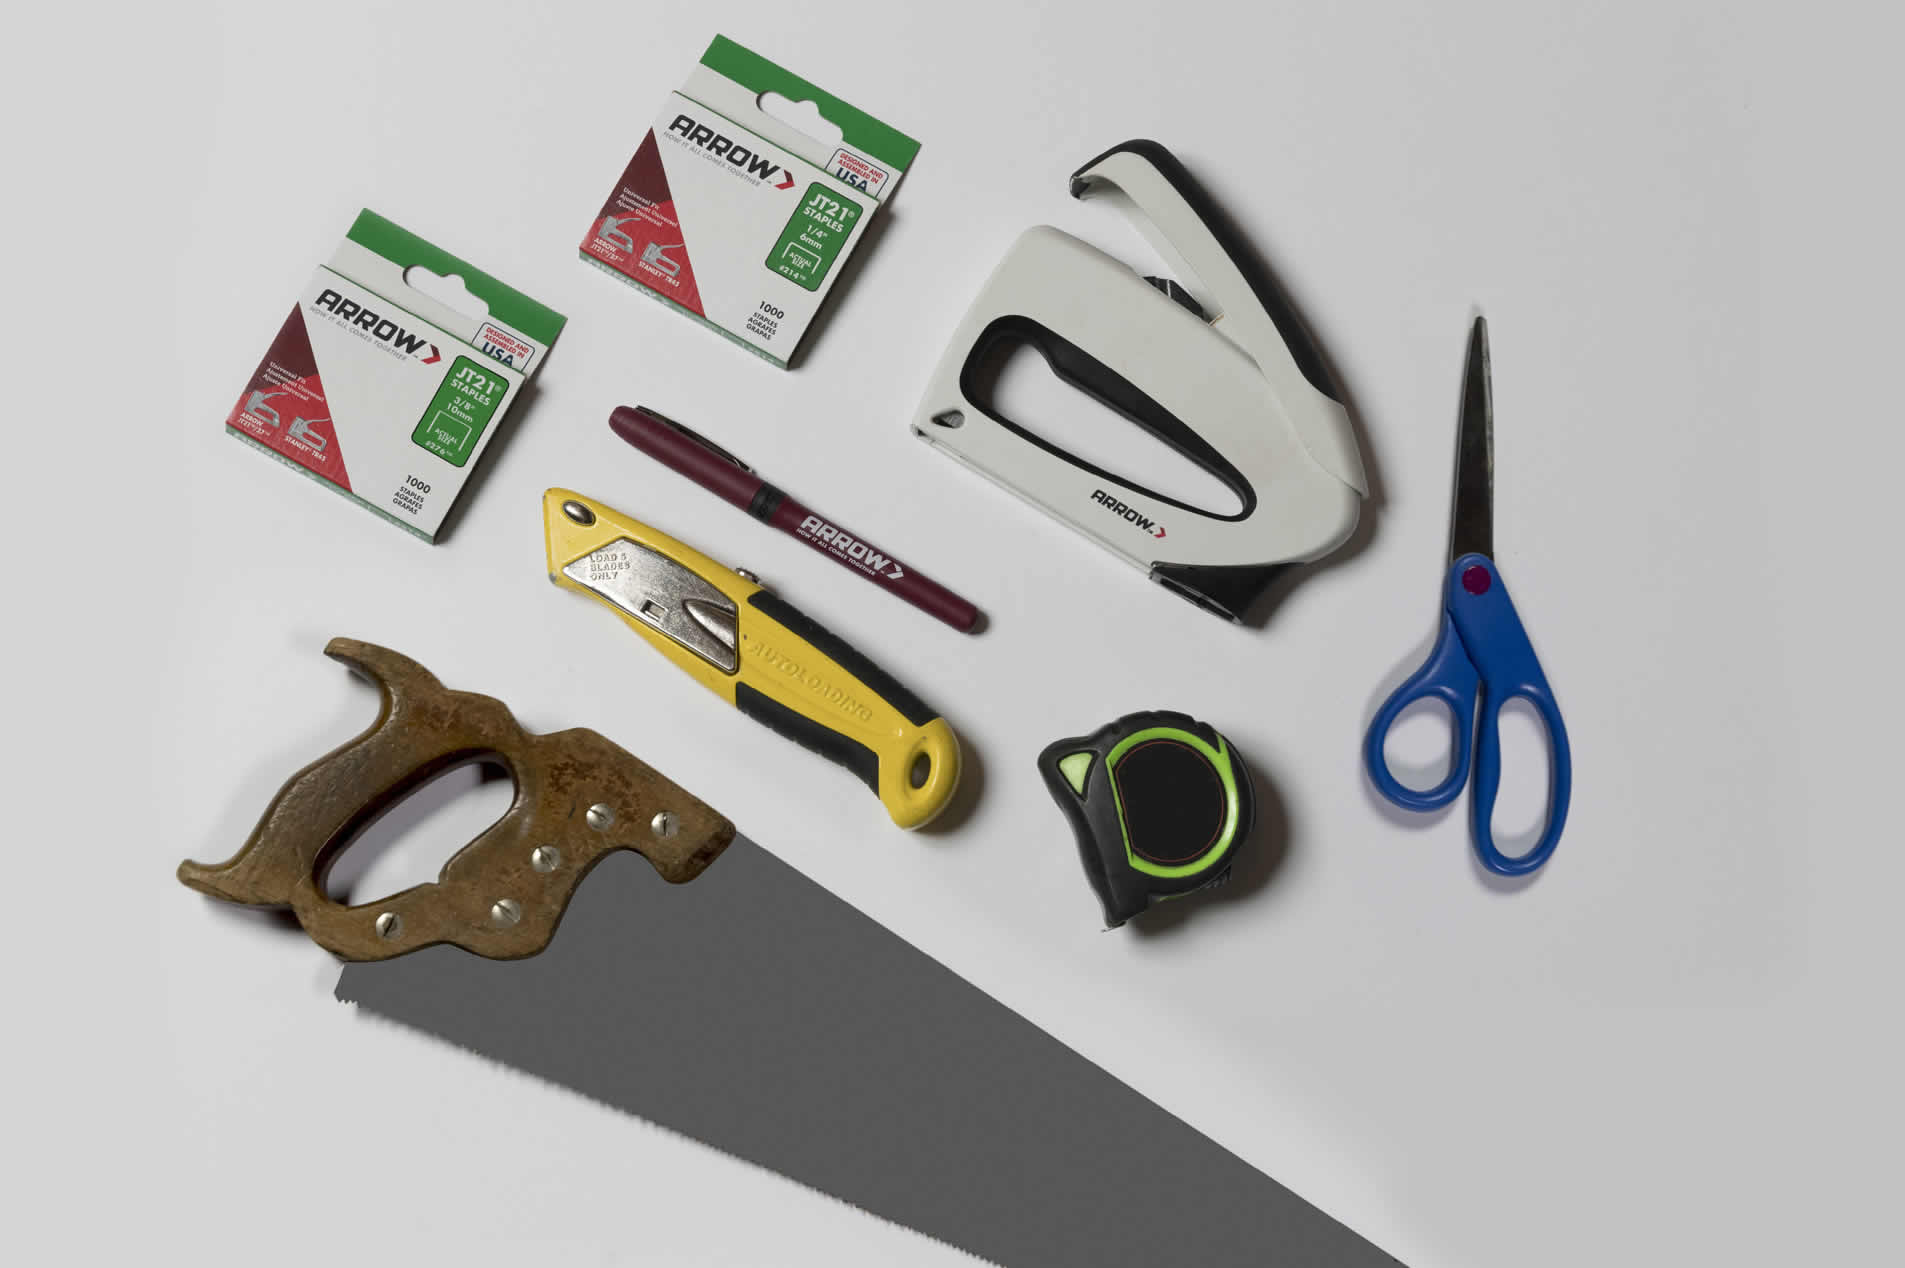 Arrow TT21 TruTac staple gun, JT21 staples and other tools